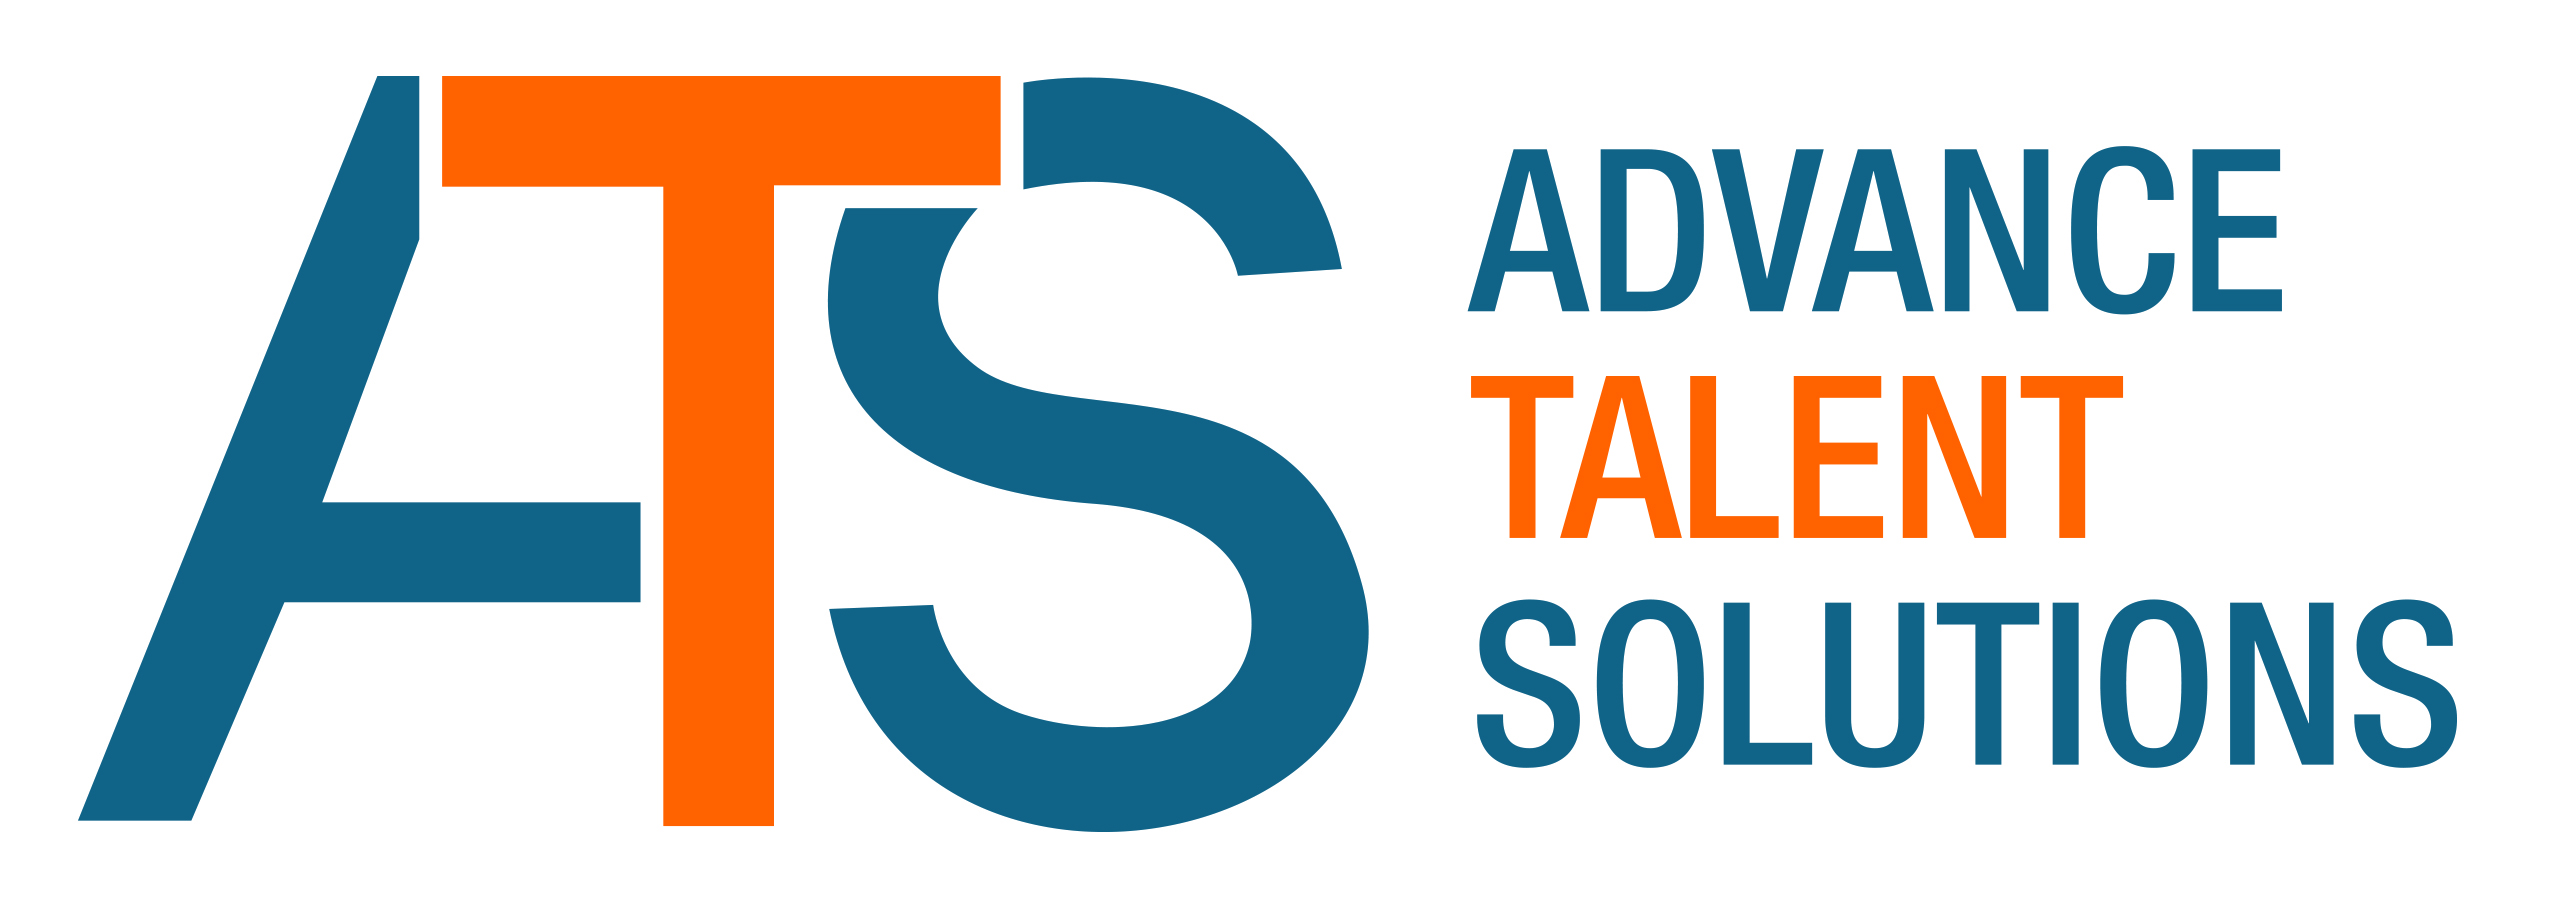 Advance Talent Solutions